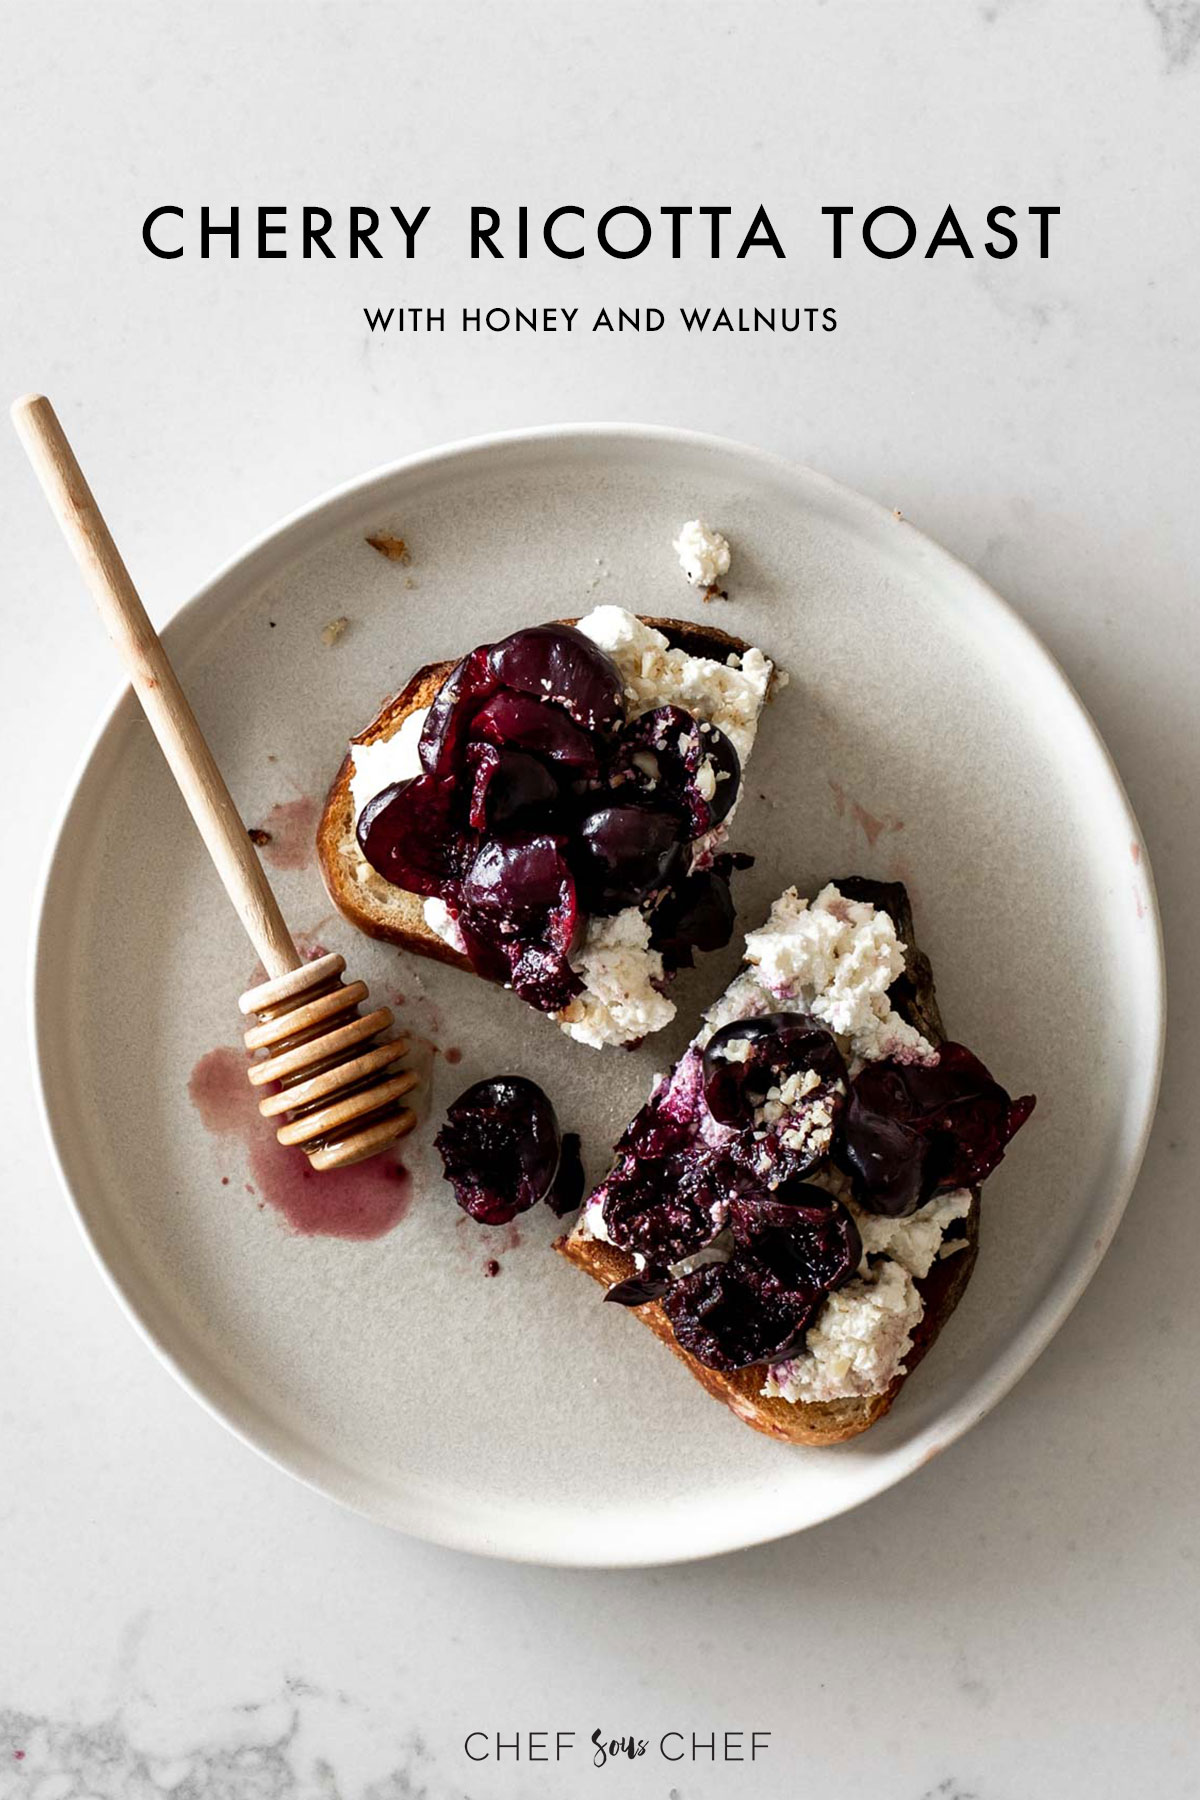 Ricotta Toast with Cherries on a Plate with a honey stick